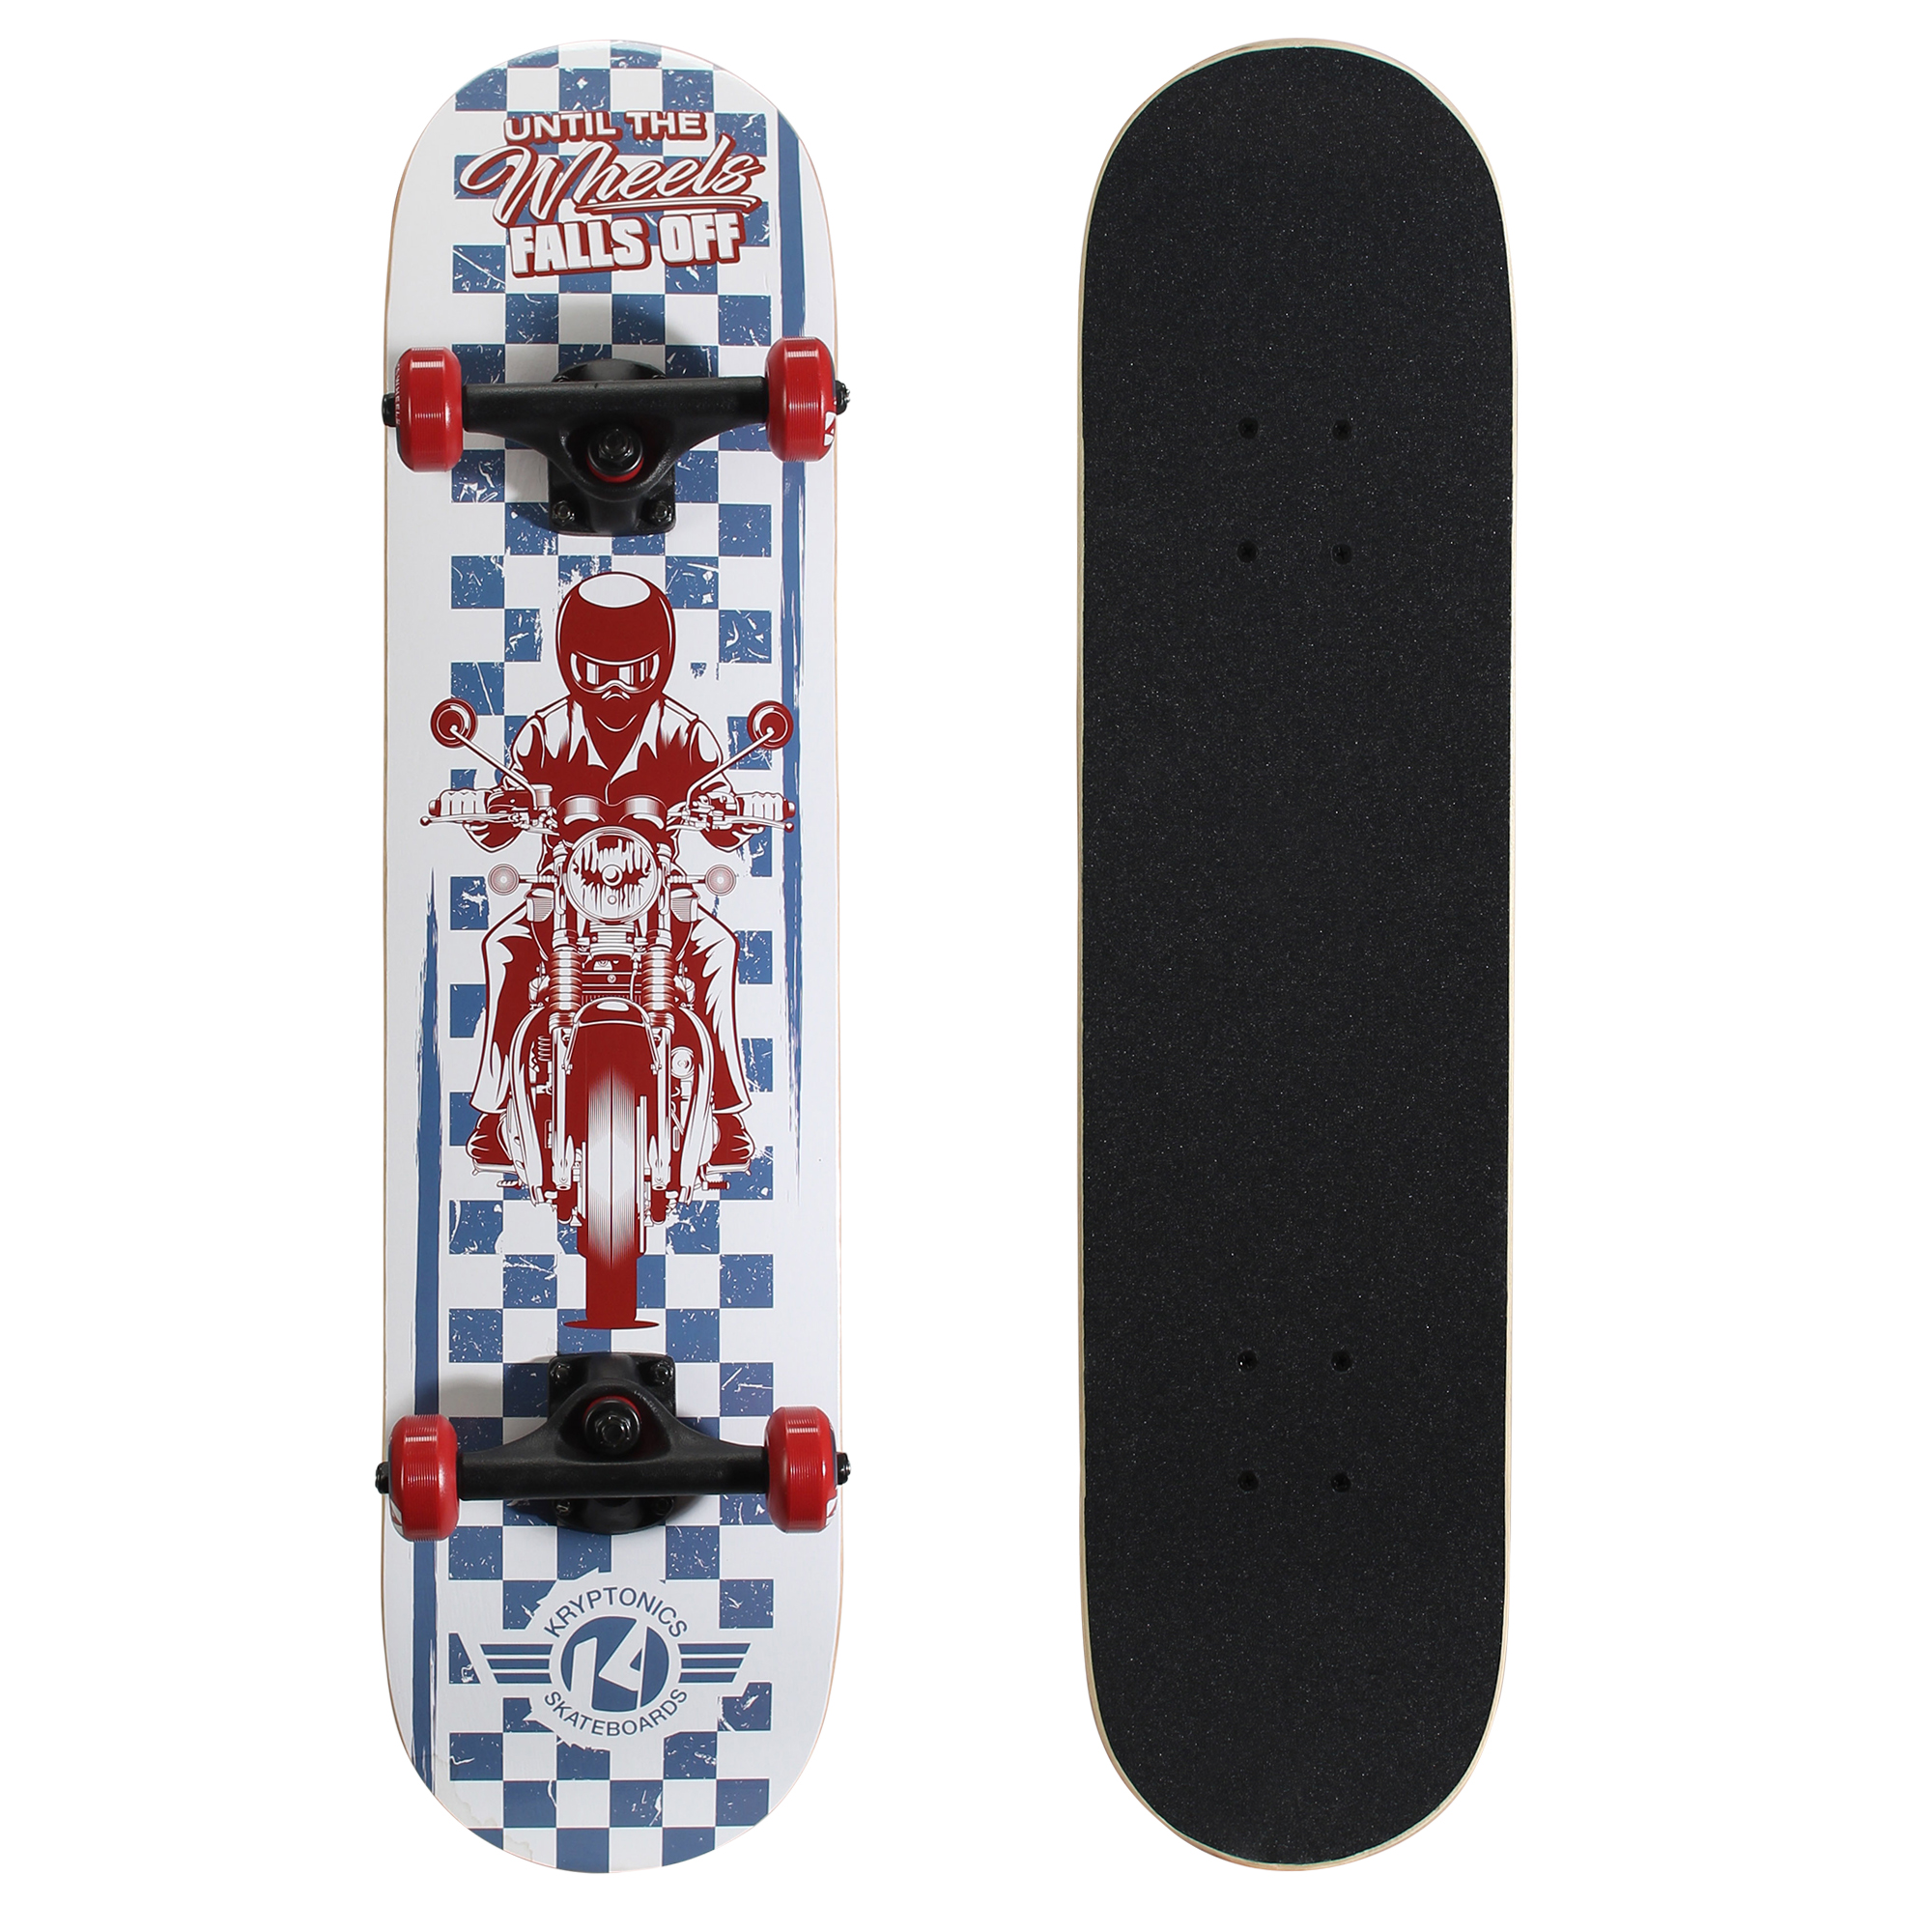 "Kryptonics Recruit Complete Skateboard (31"" x 7.5"") by Bravo Sports"